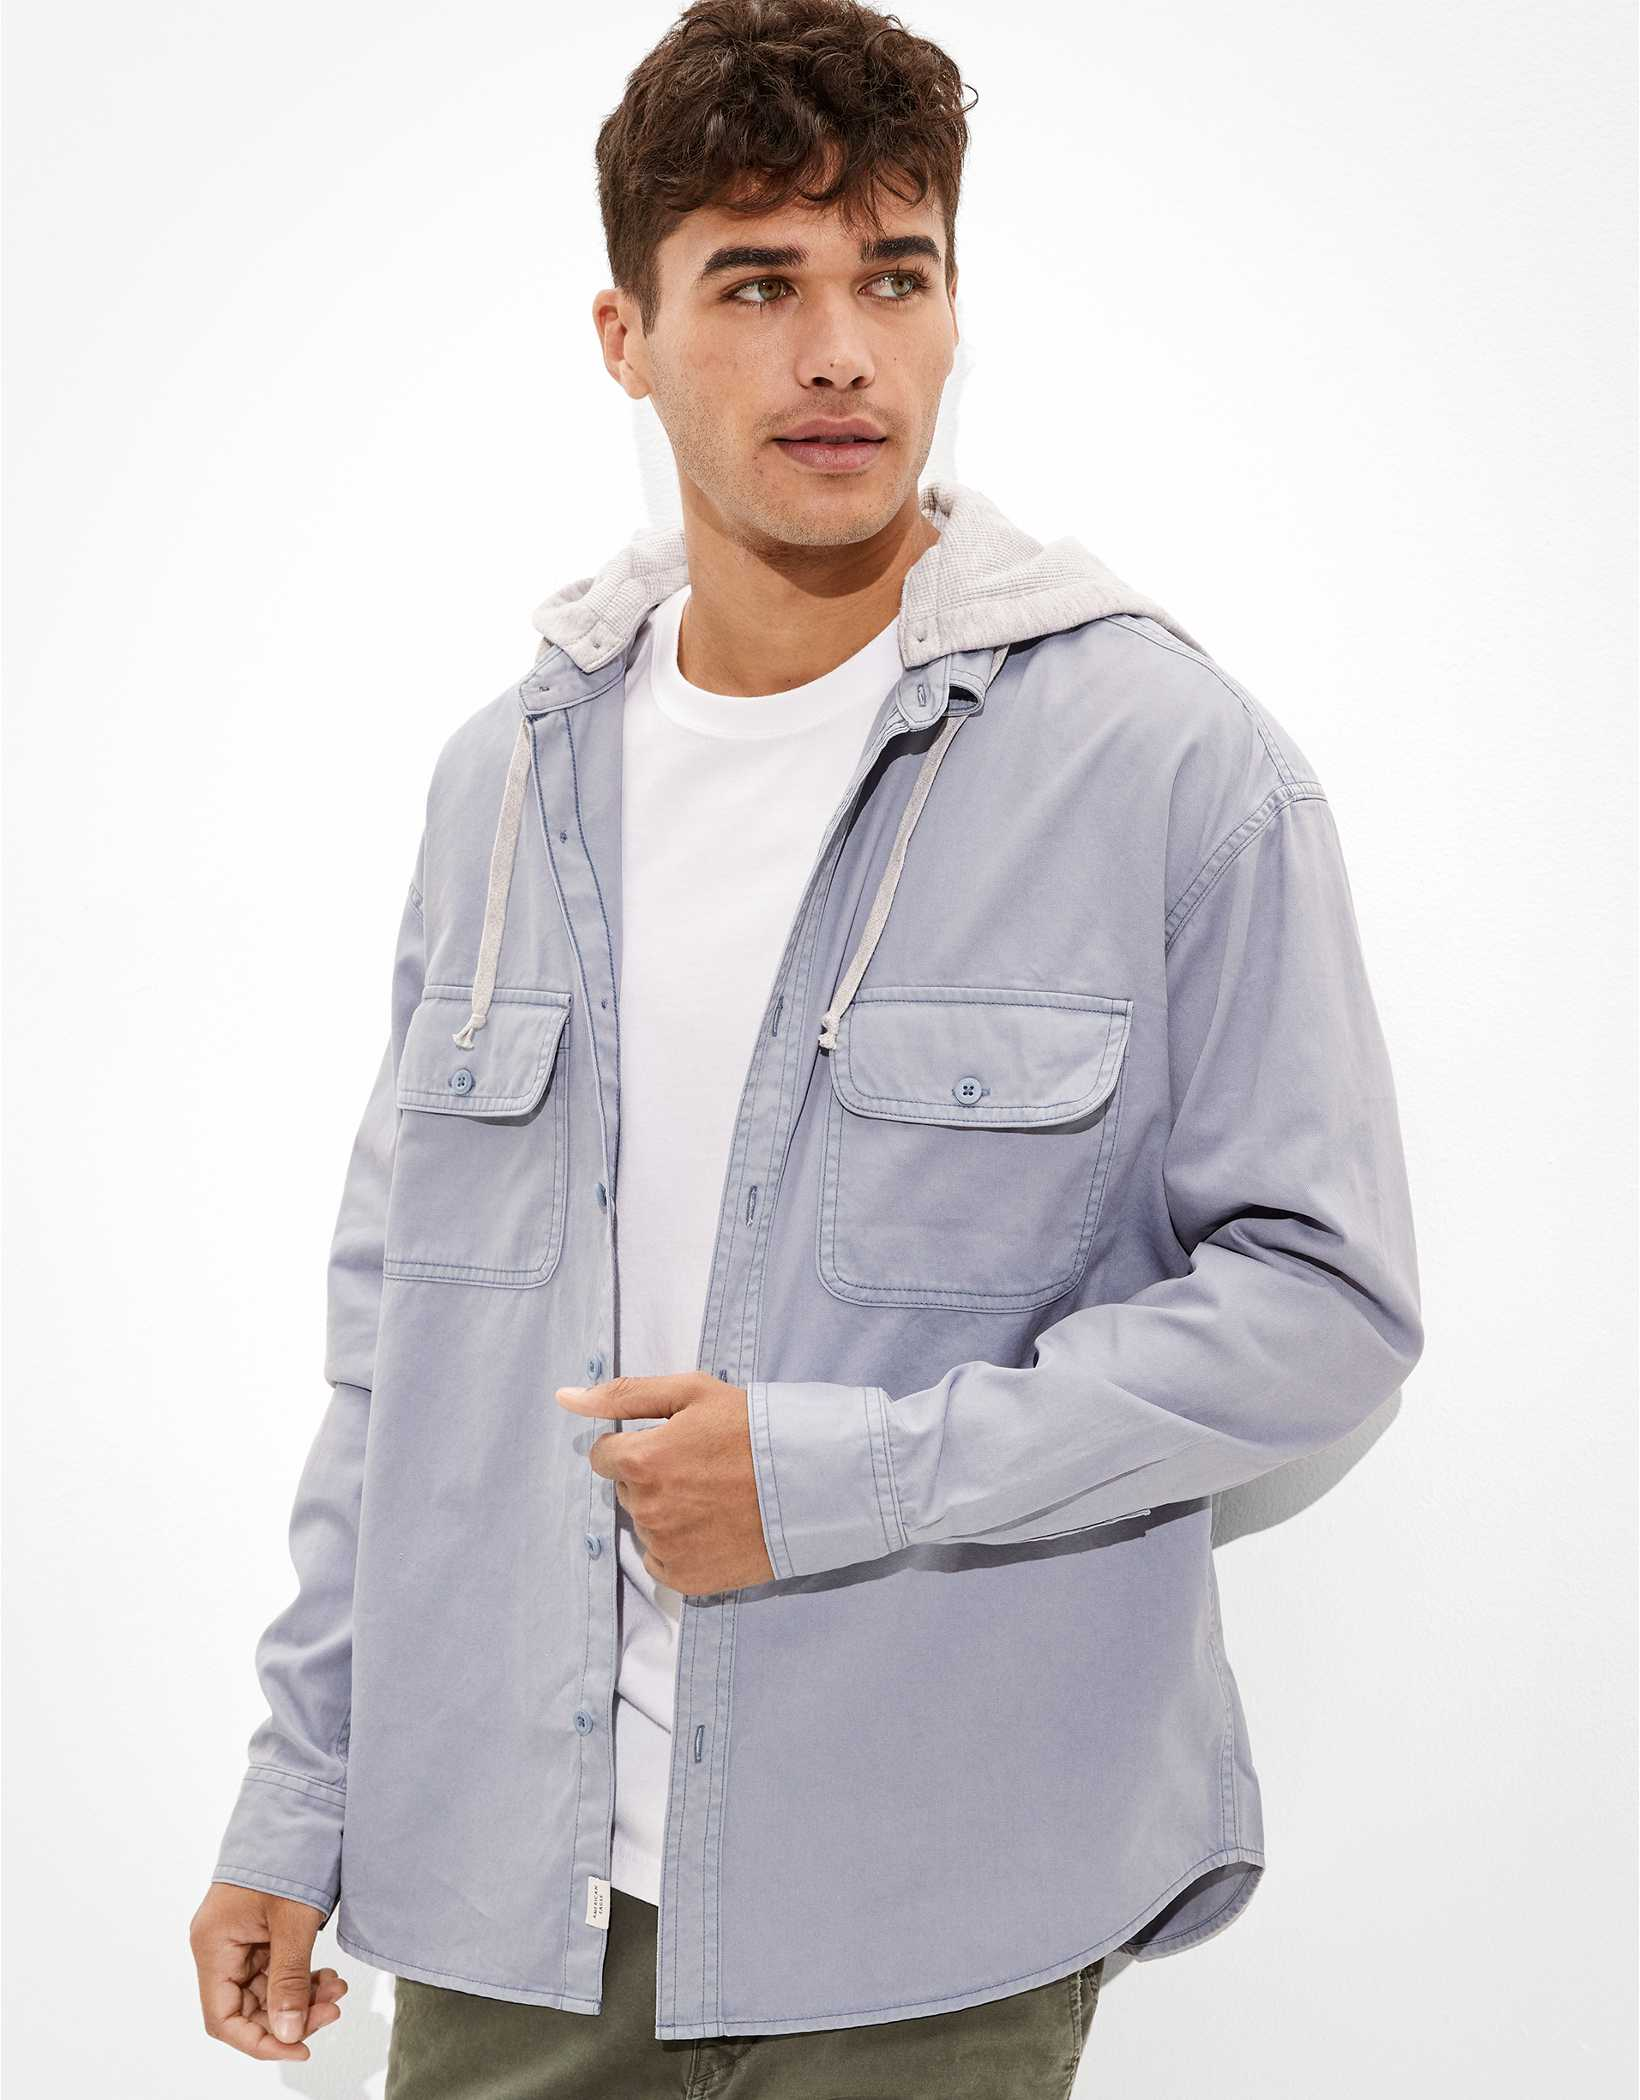 AE Super Soft Hooded Button-Up Shirt